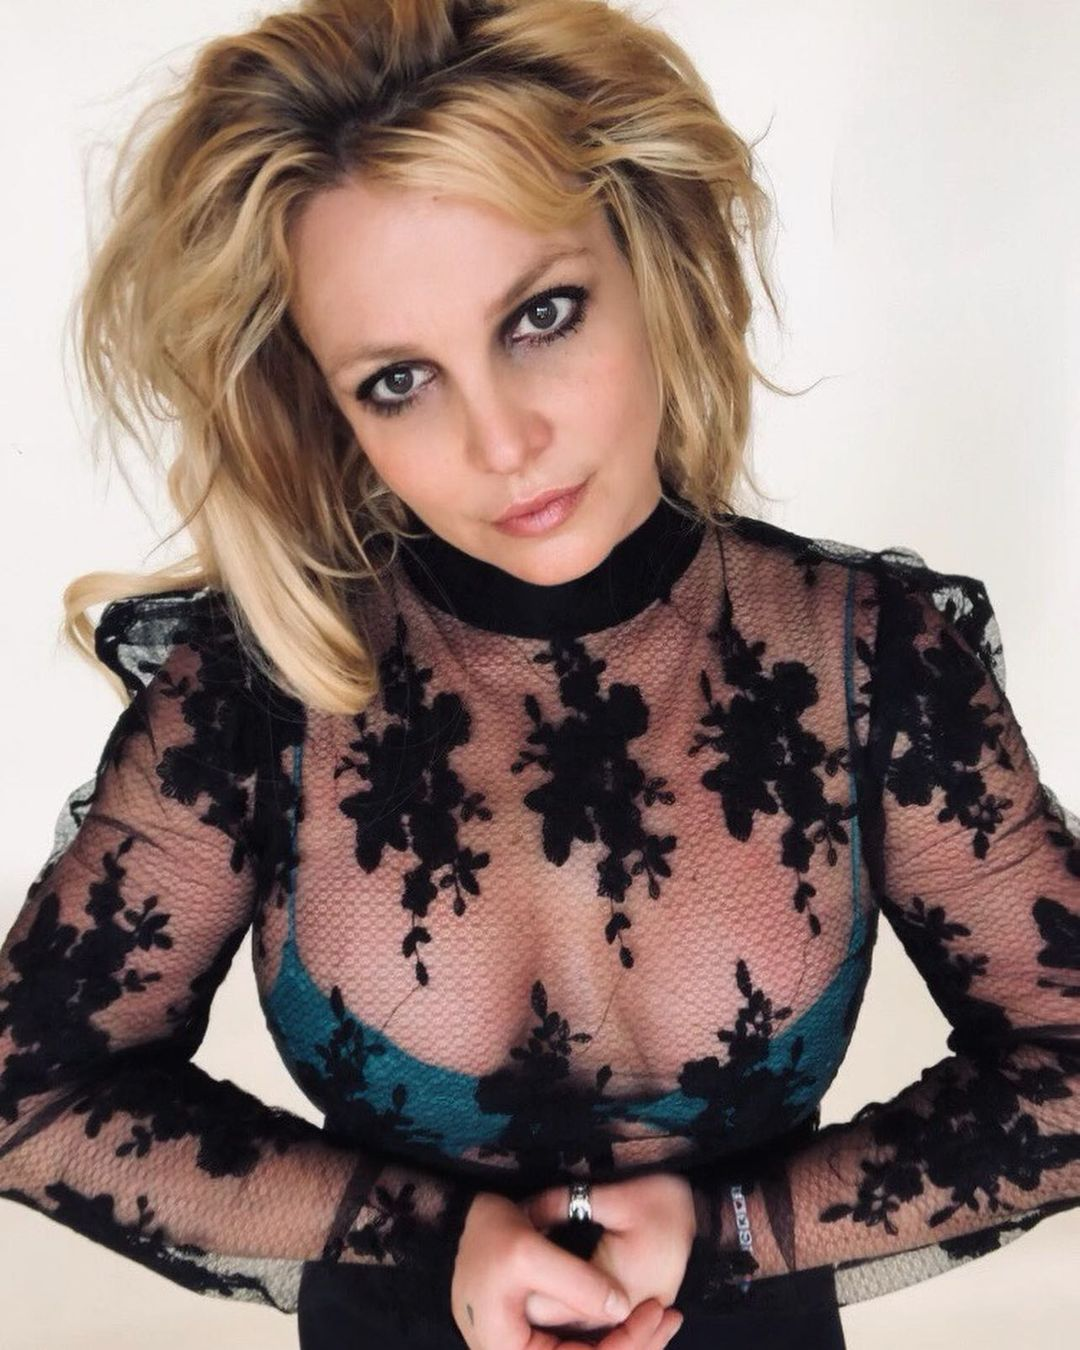 Britney Spears Sexy Boobs